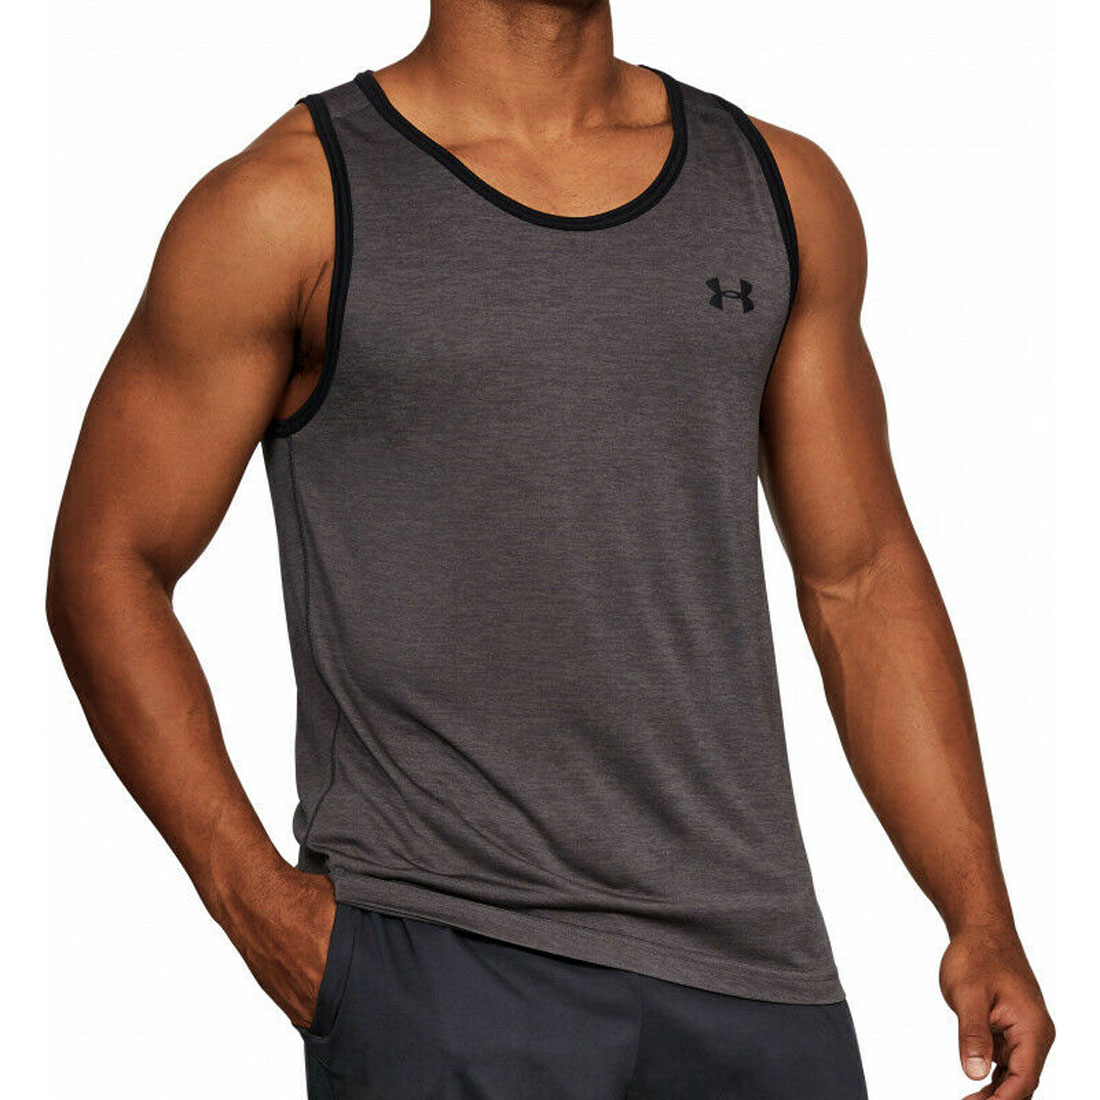 Ecko Unlimited Trailer Mens Vest White Crew Sleeveless Gym Sports Top Small